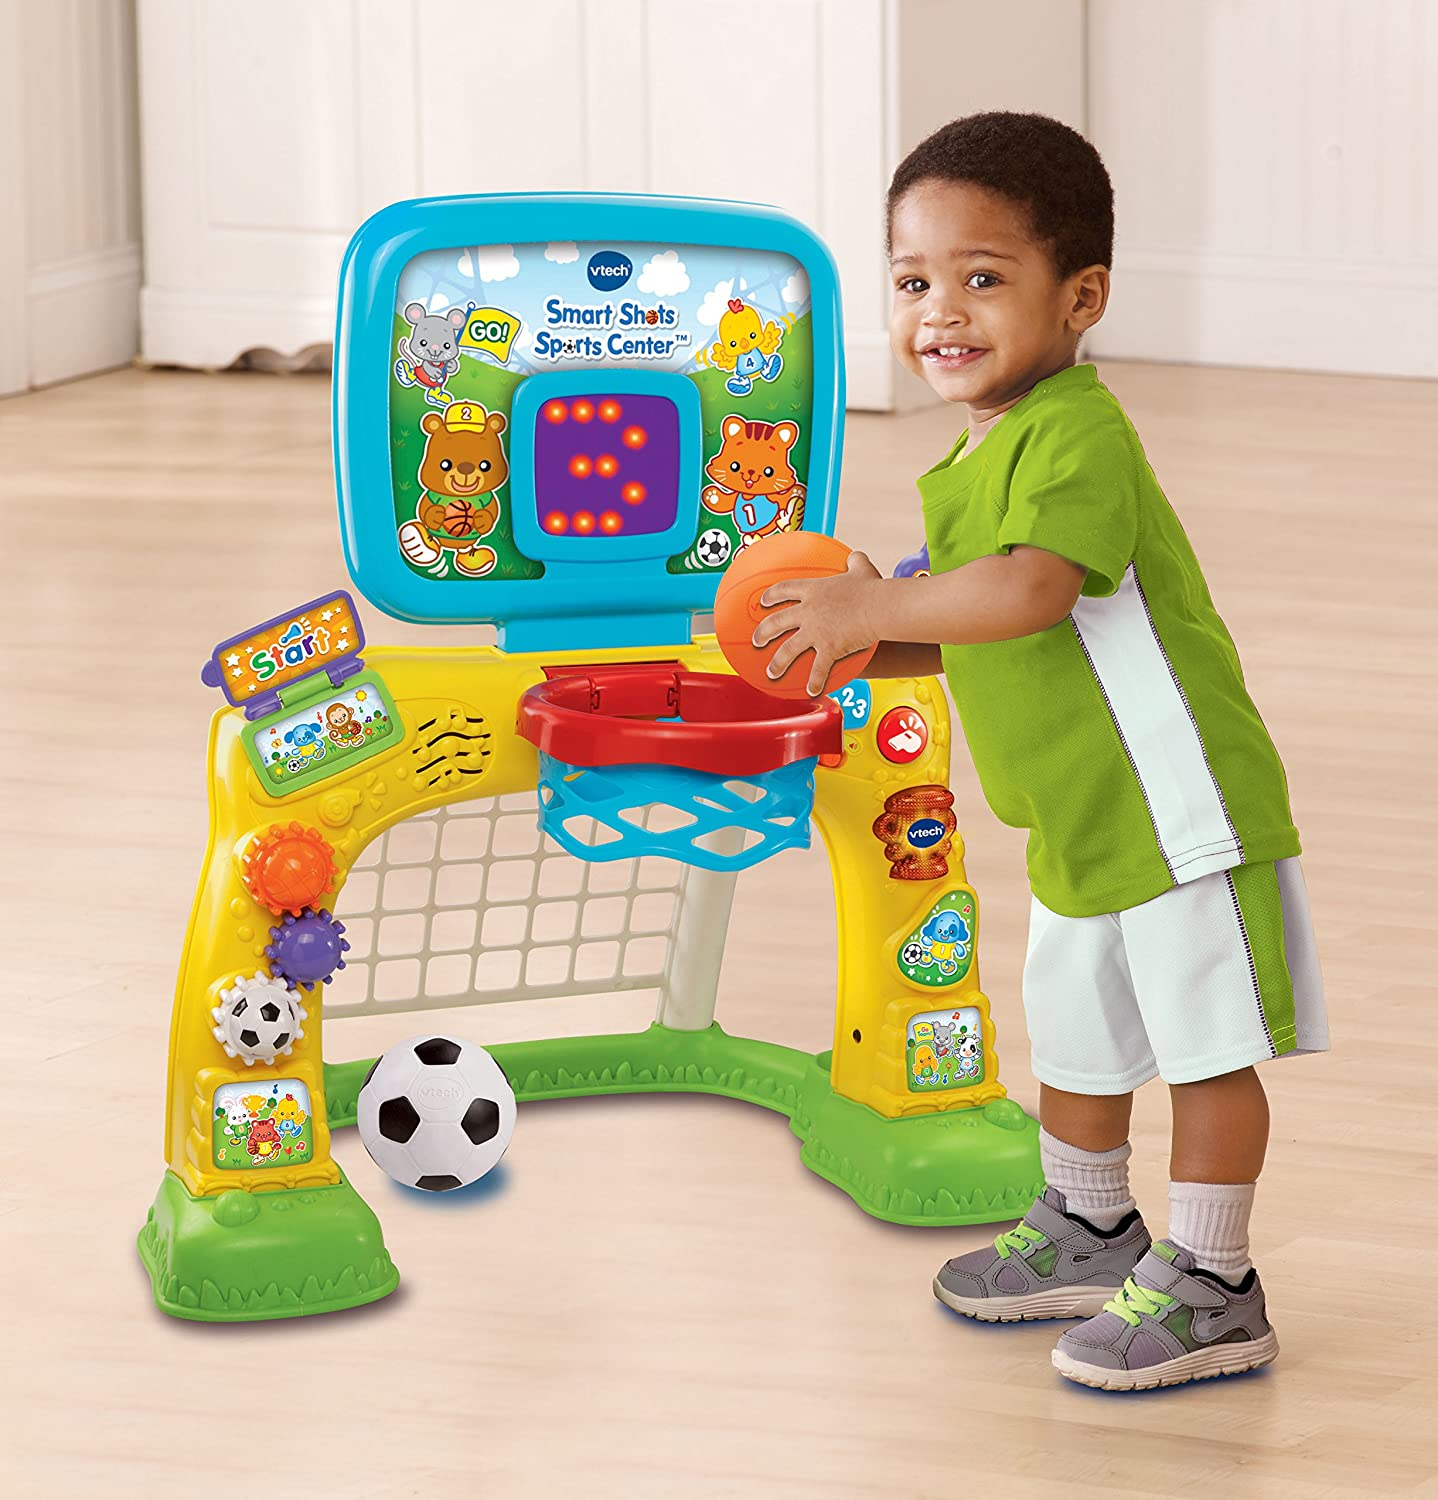 Toys For 3 Year Old Boys 2014 : Top toys for year old boys gift canyon